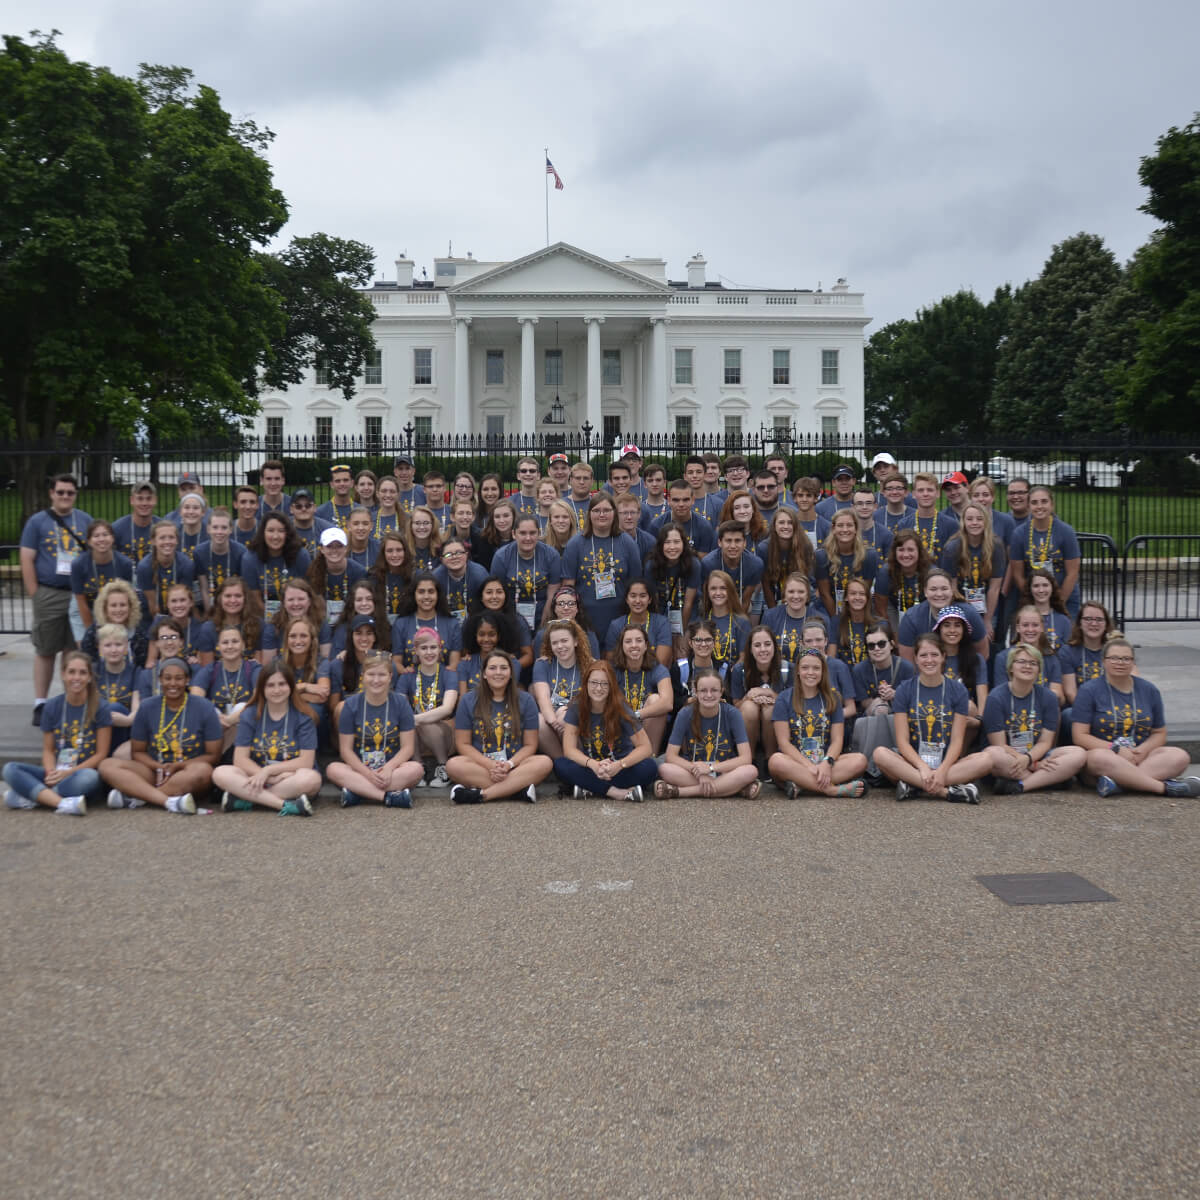 washington-dc-youth-tour-capital-whitehouse.jpg